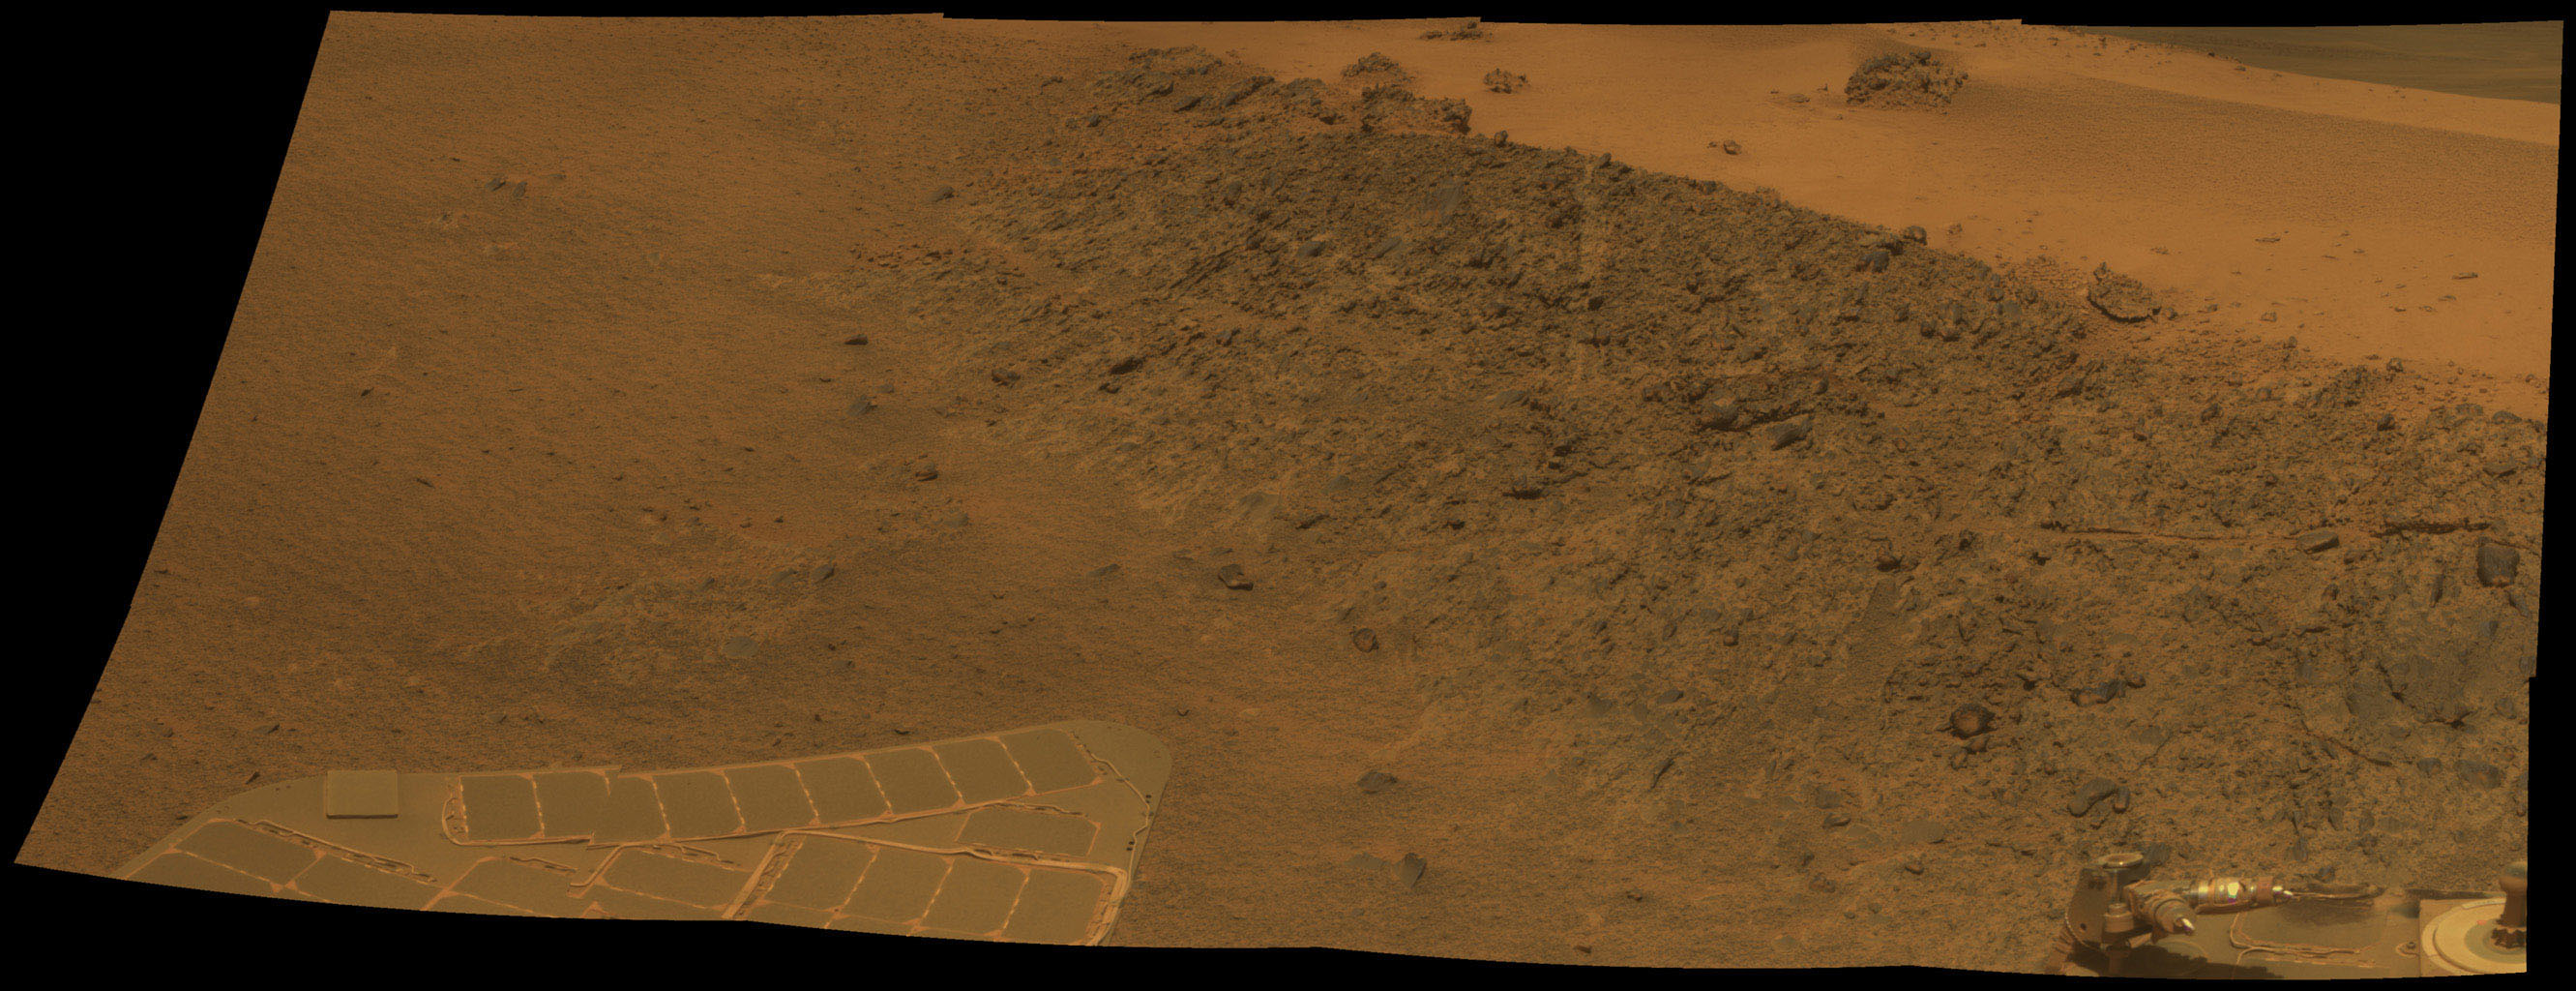 "This mosaic shows a north-facing outcrop, informally named 'Greeley Haven.' The site is near the northern tip of the ""Cape York"" segment of the western rim of Endeavour Crater."